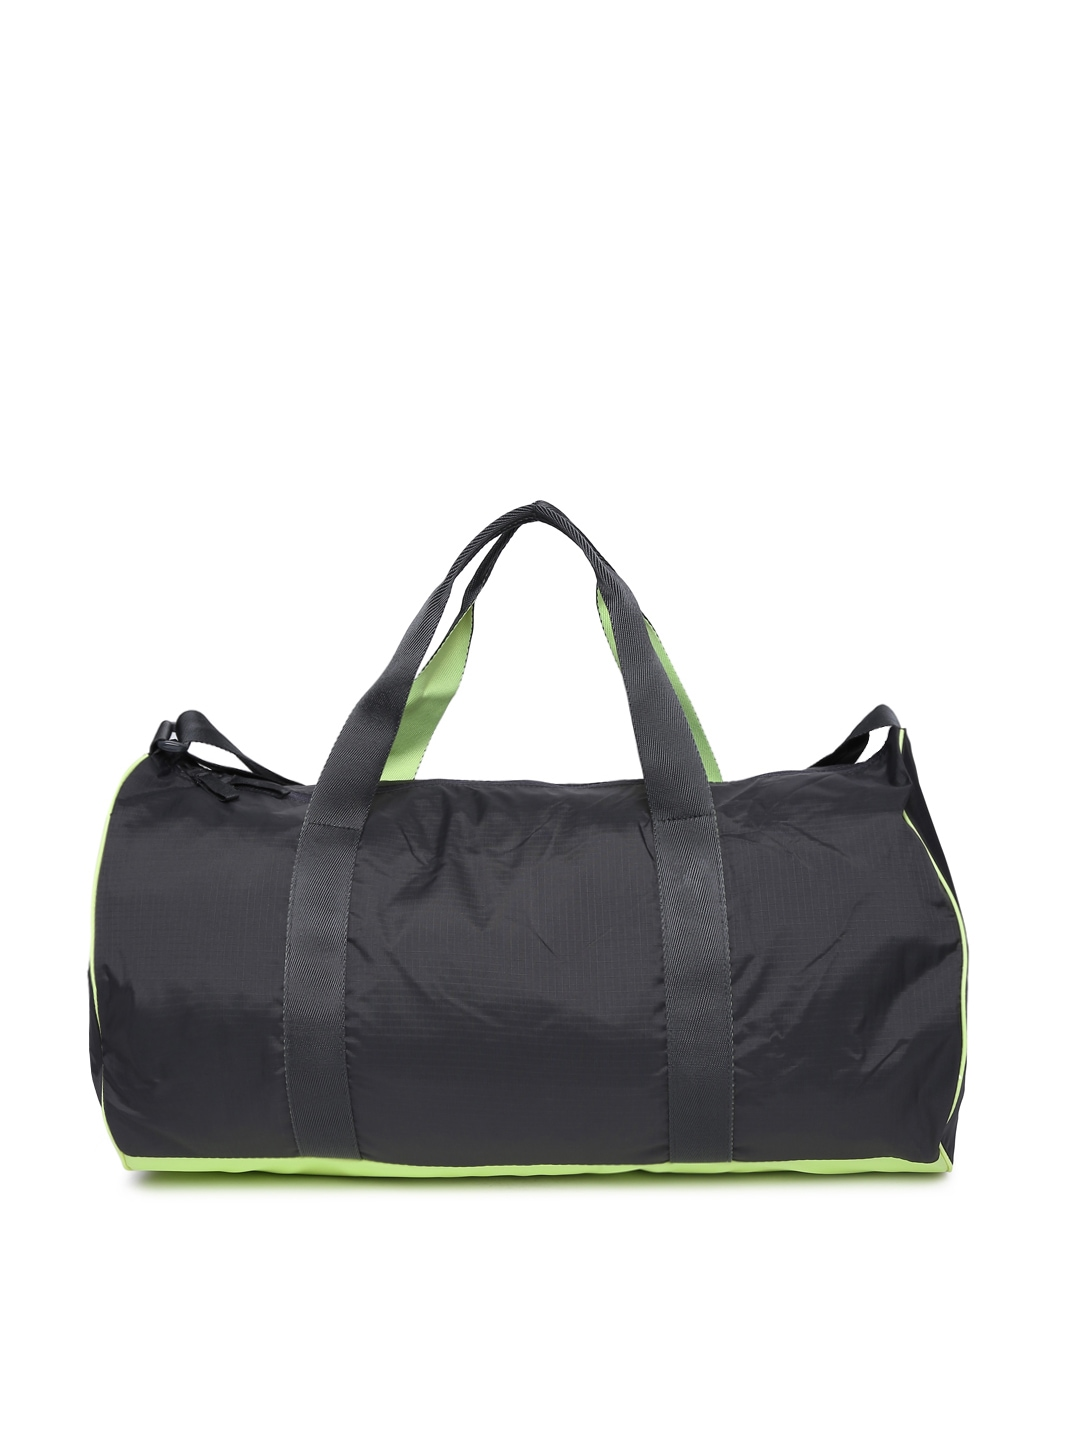 Perfect If This Bag Isnt Quite Your Style, You Can Shop These Alternative NCAA Duffel Bags For Both Men And Women Sporty Girls Will Love The Look And Design Of This